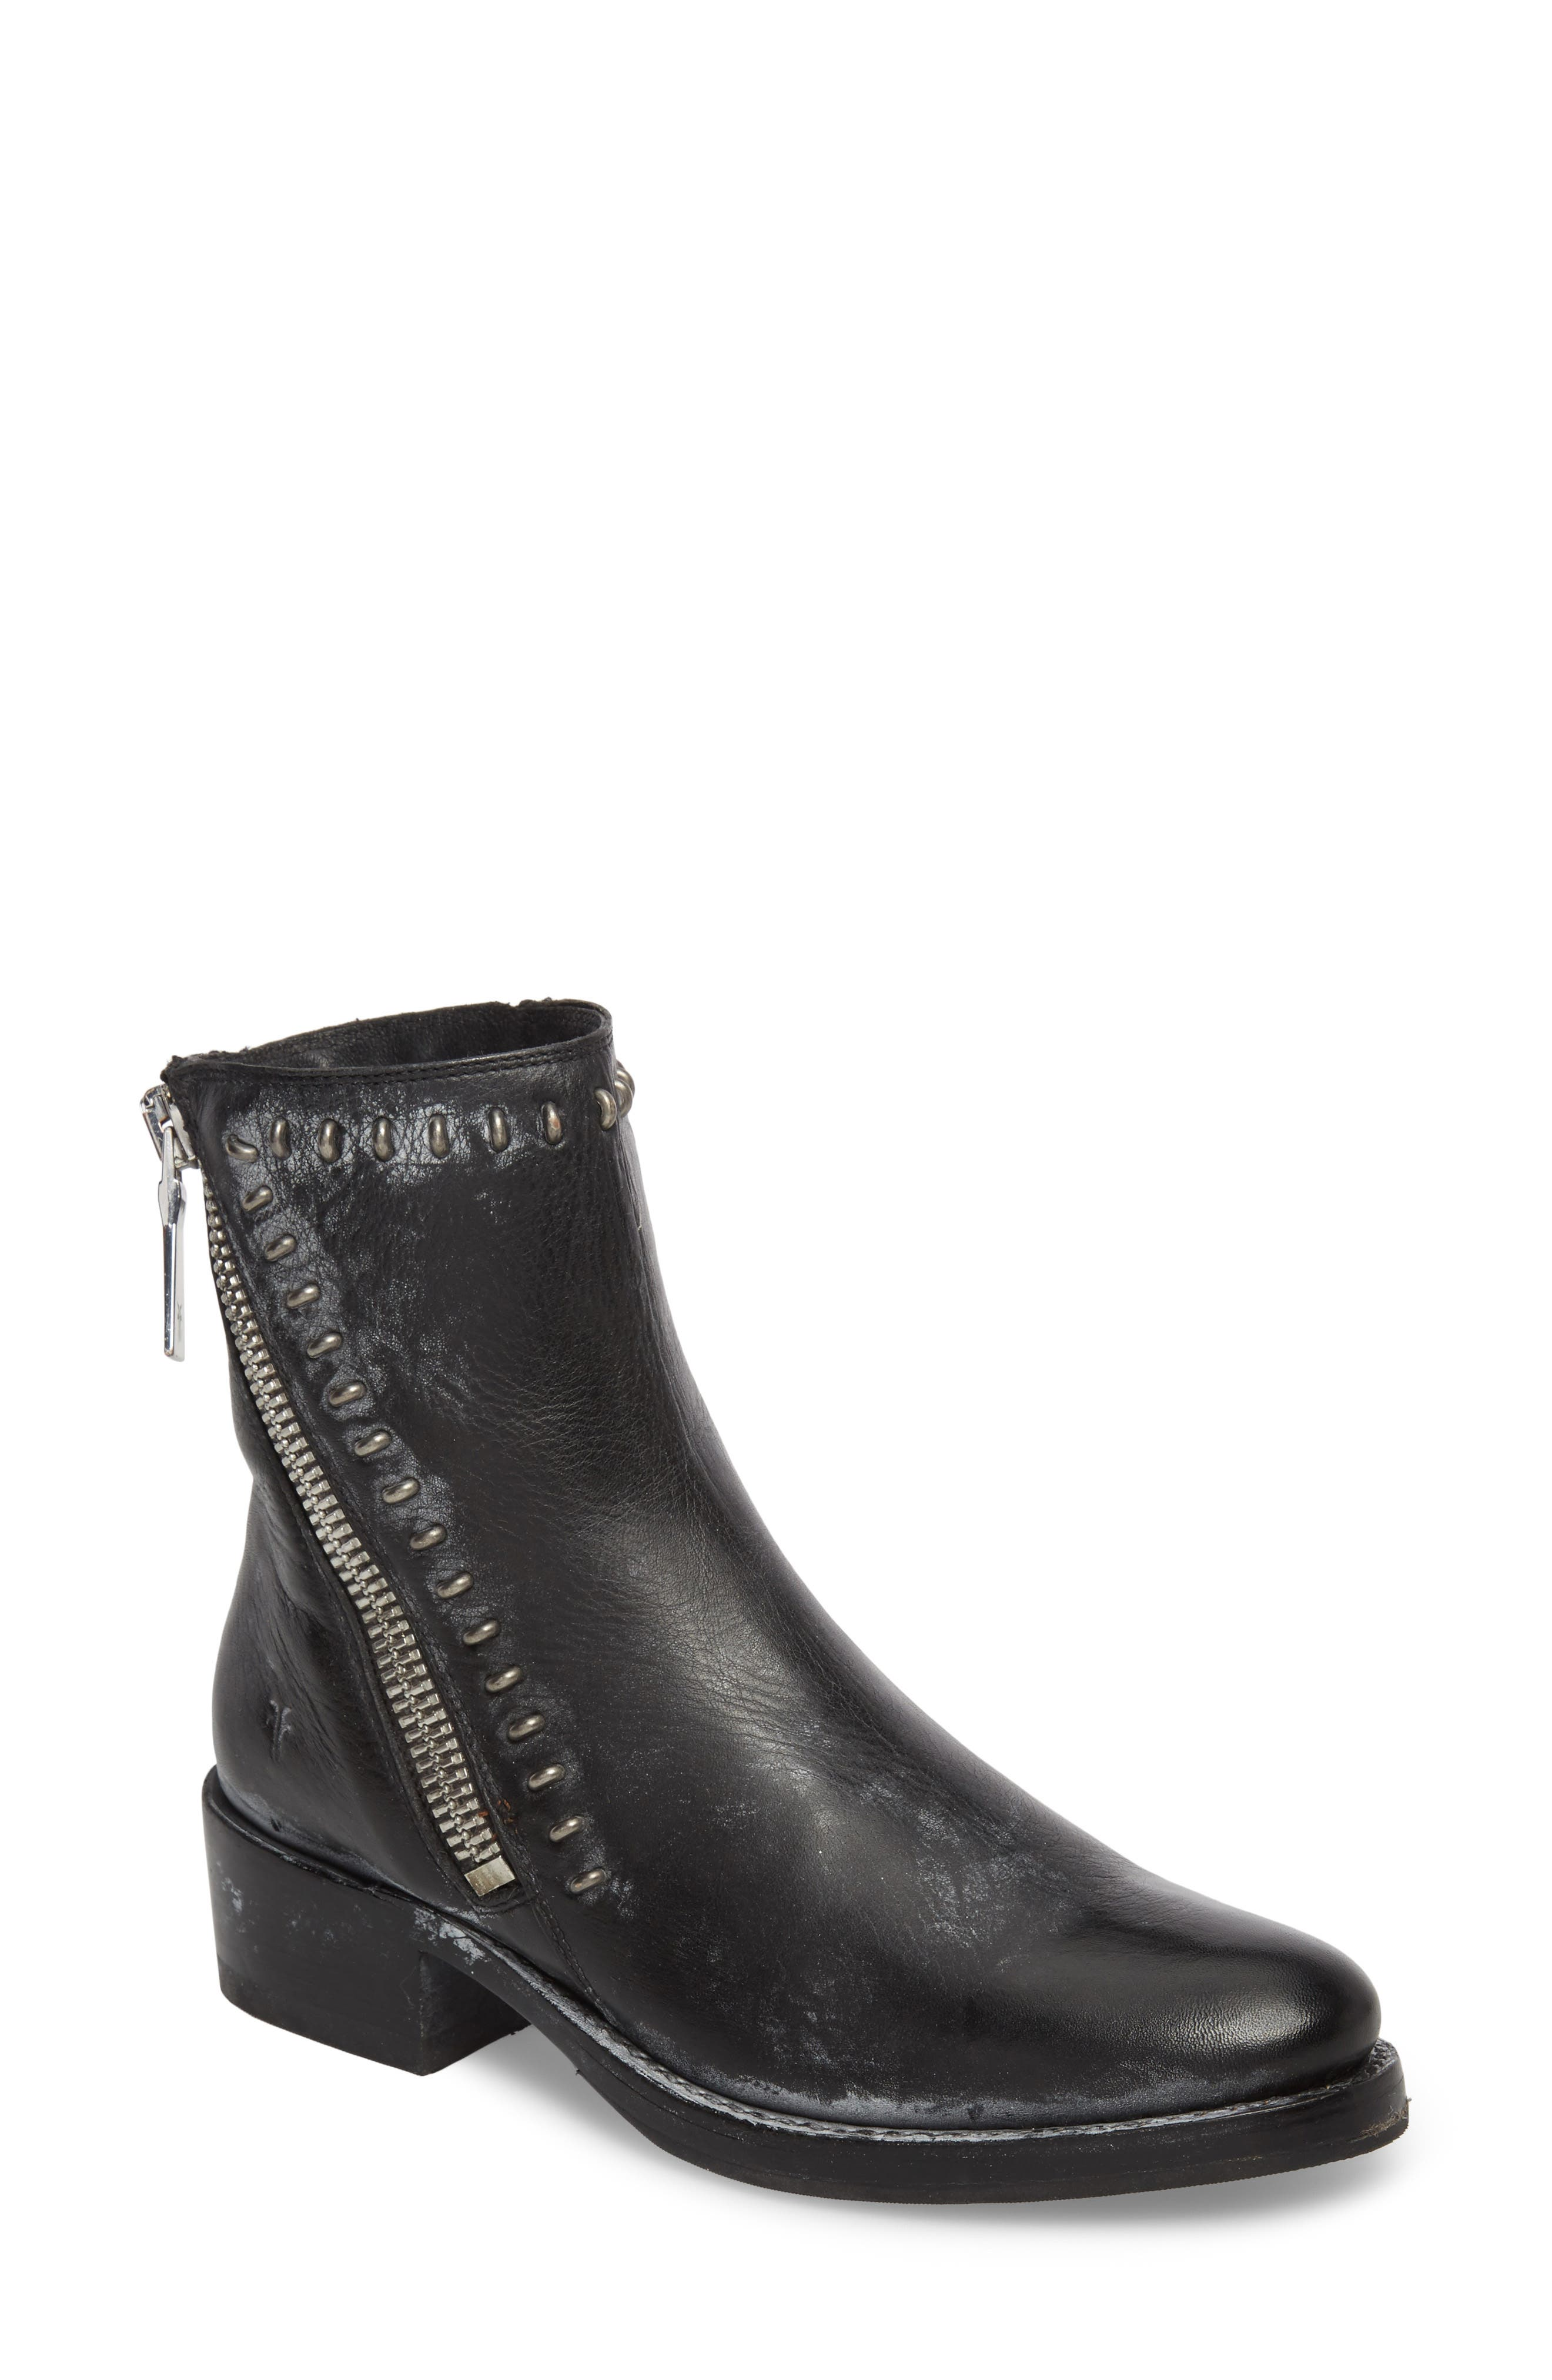 Demi Rebel Zip Bootie,                         Main,                         color, Black